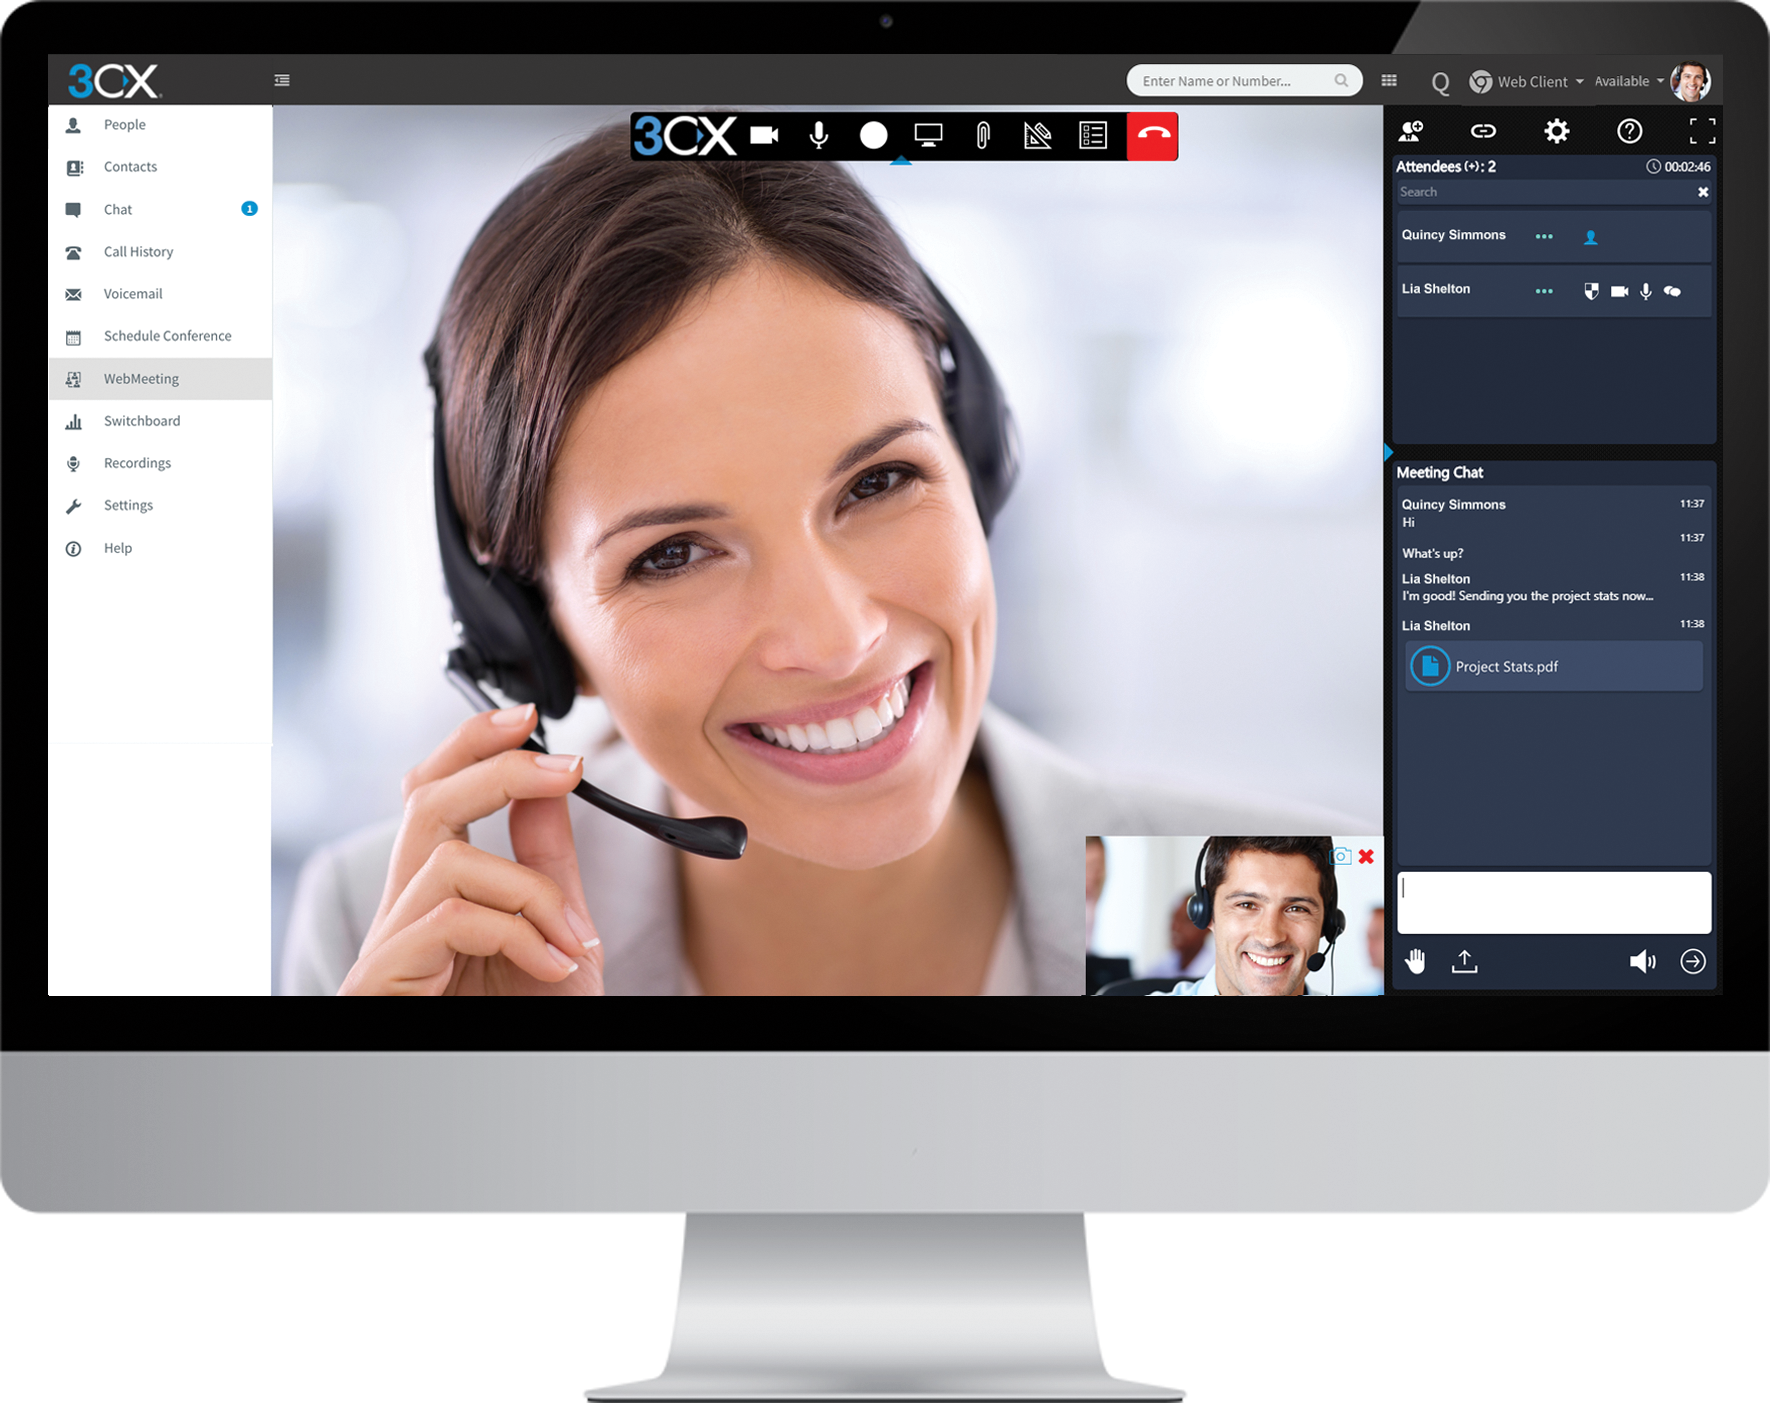 3CX's integrated video conferencing is easy to use and enables businesses to save time and money by hosting virtual meetings, whilst enjoying the benefits of face-to-face communication.